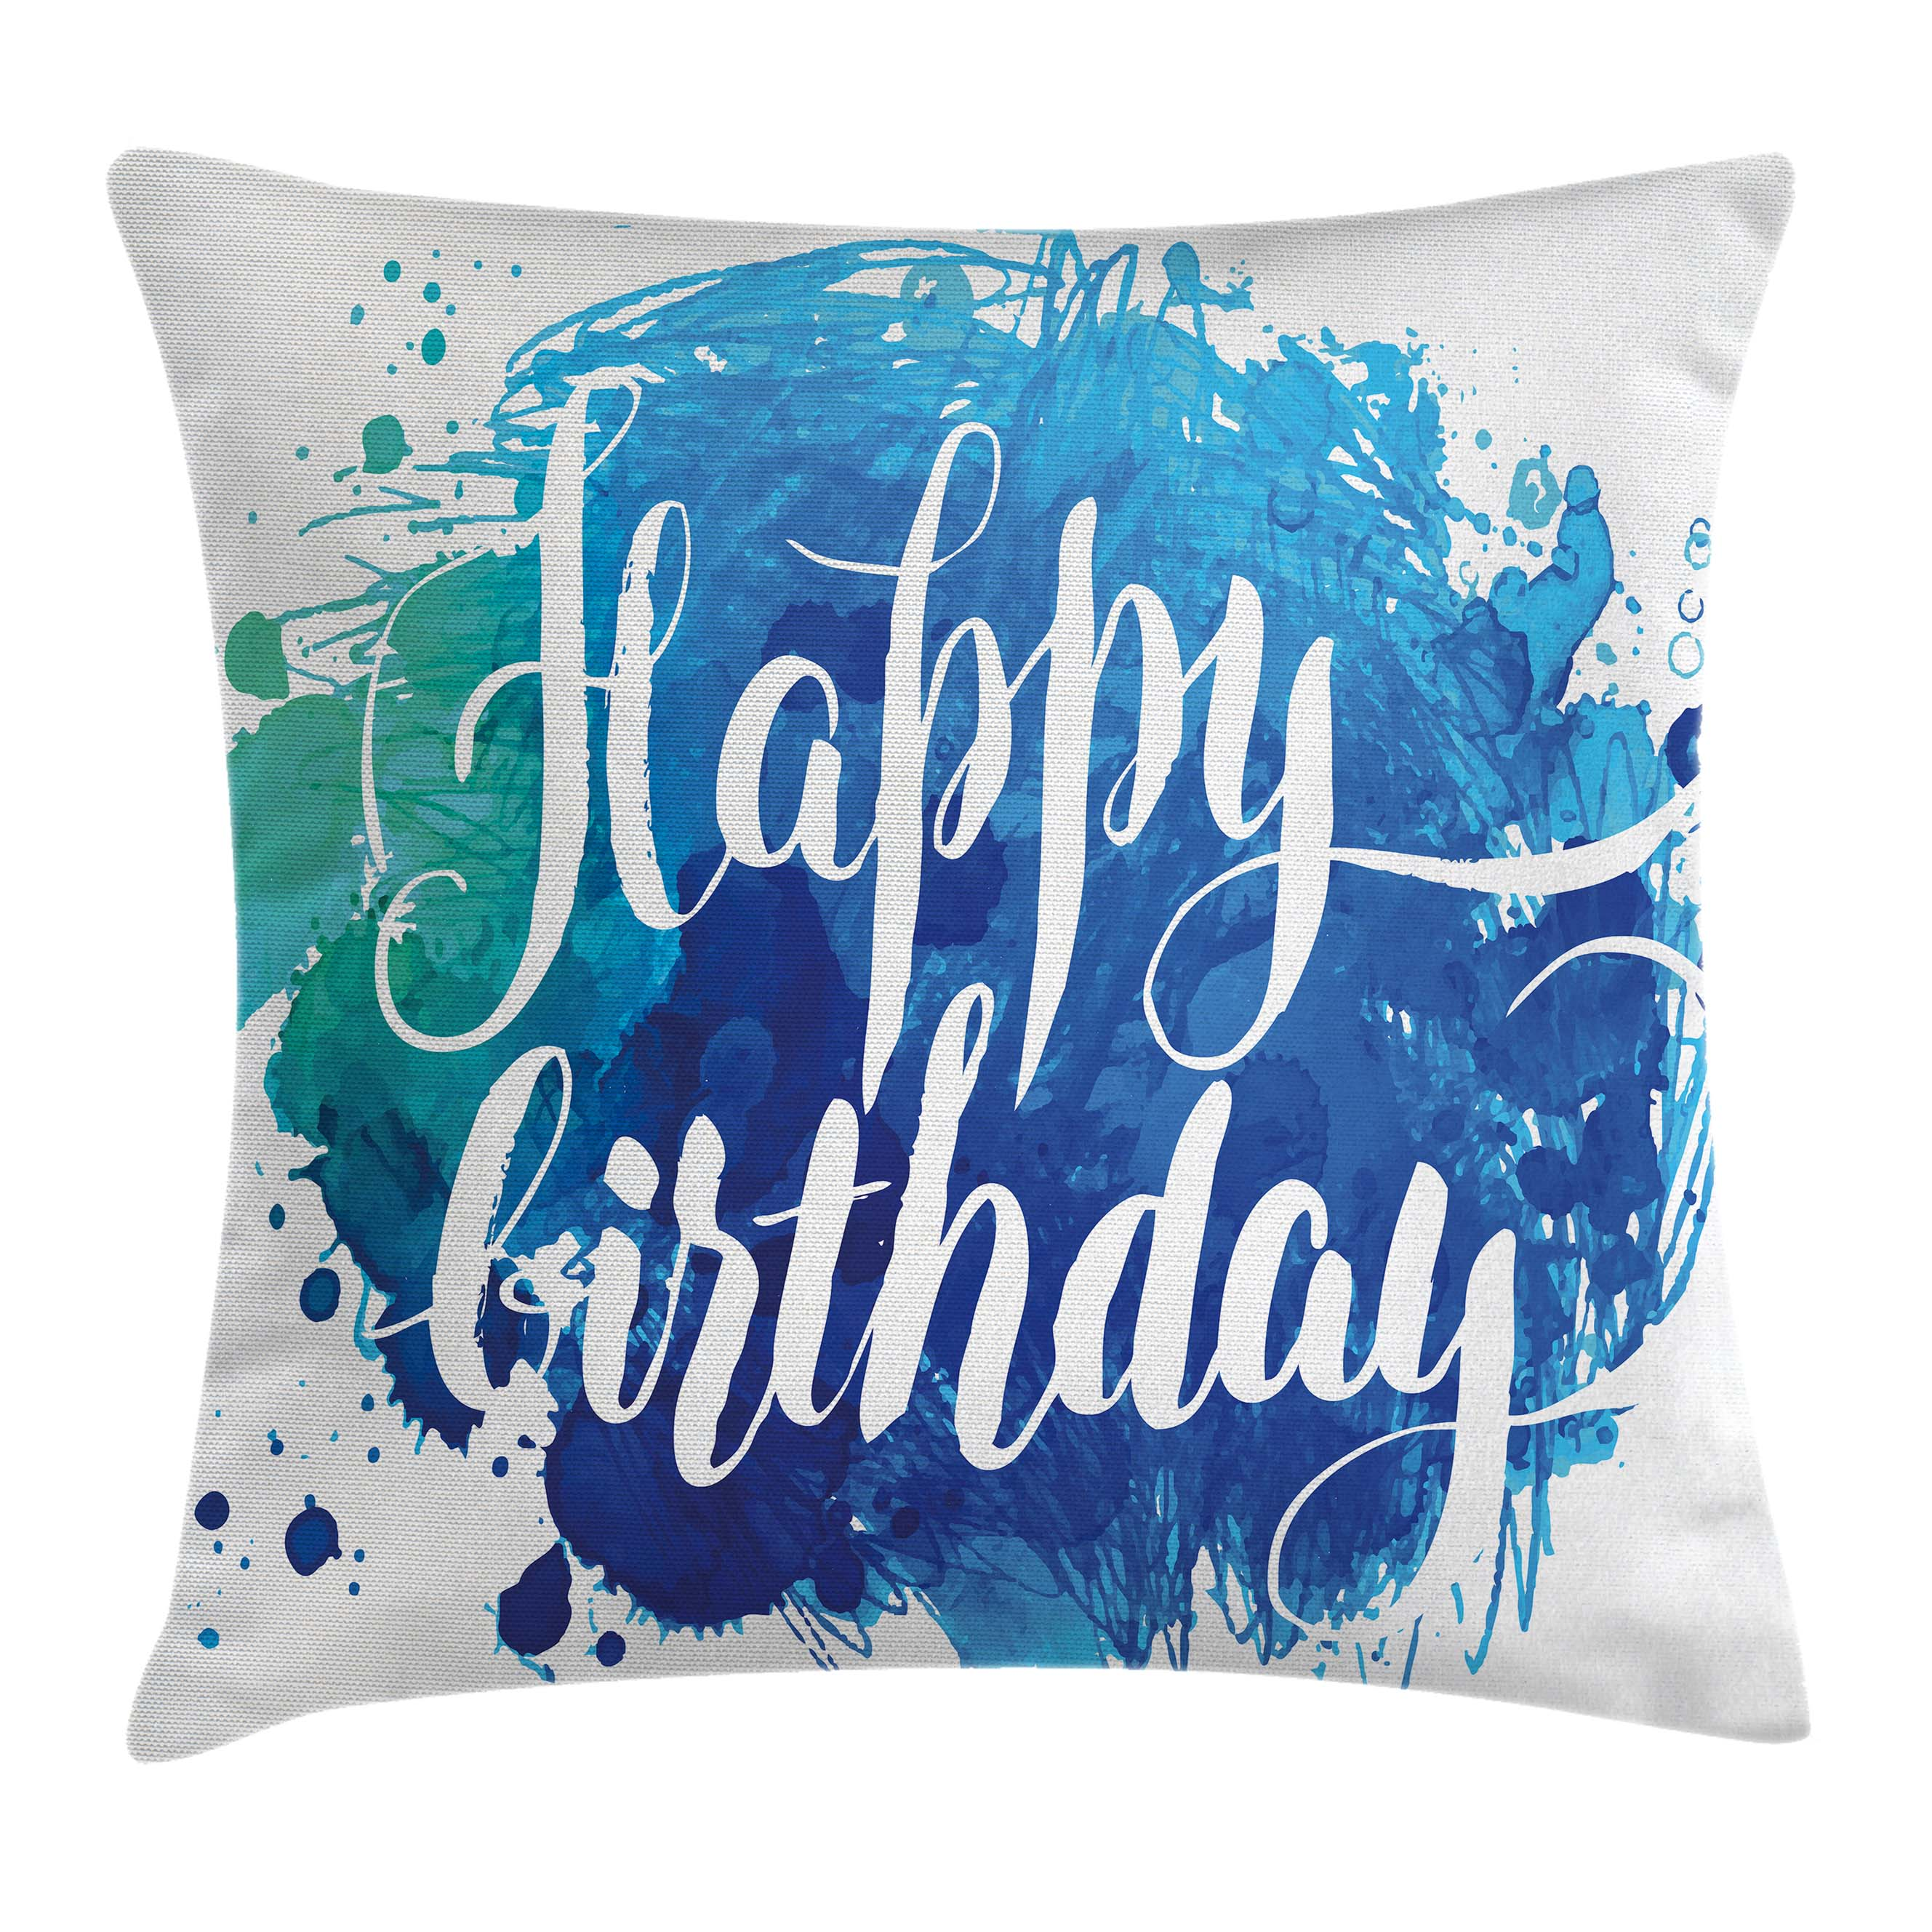 Birthday Decorations Throw Pillow Cushion Cover, Watercolor Greeting Card Inspired Display with Text Brushstrokes, Decorative Square Accent Pillow Case, 16 X 16 Inches, Blue Green White, by Ambesonne